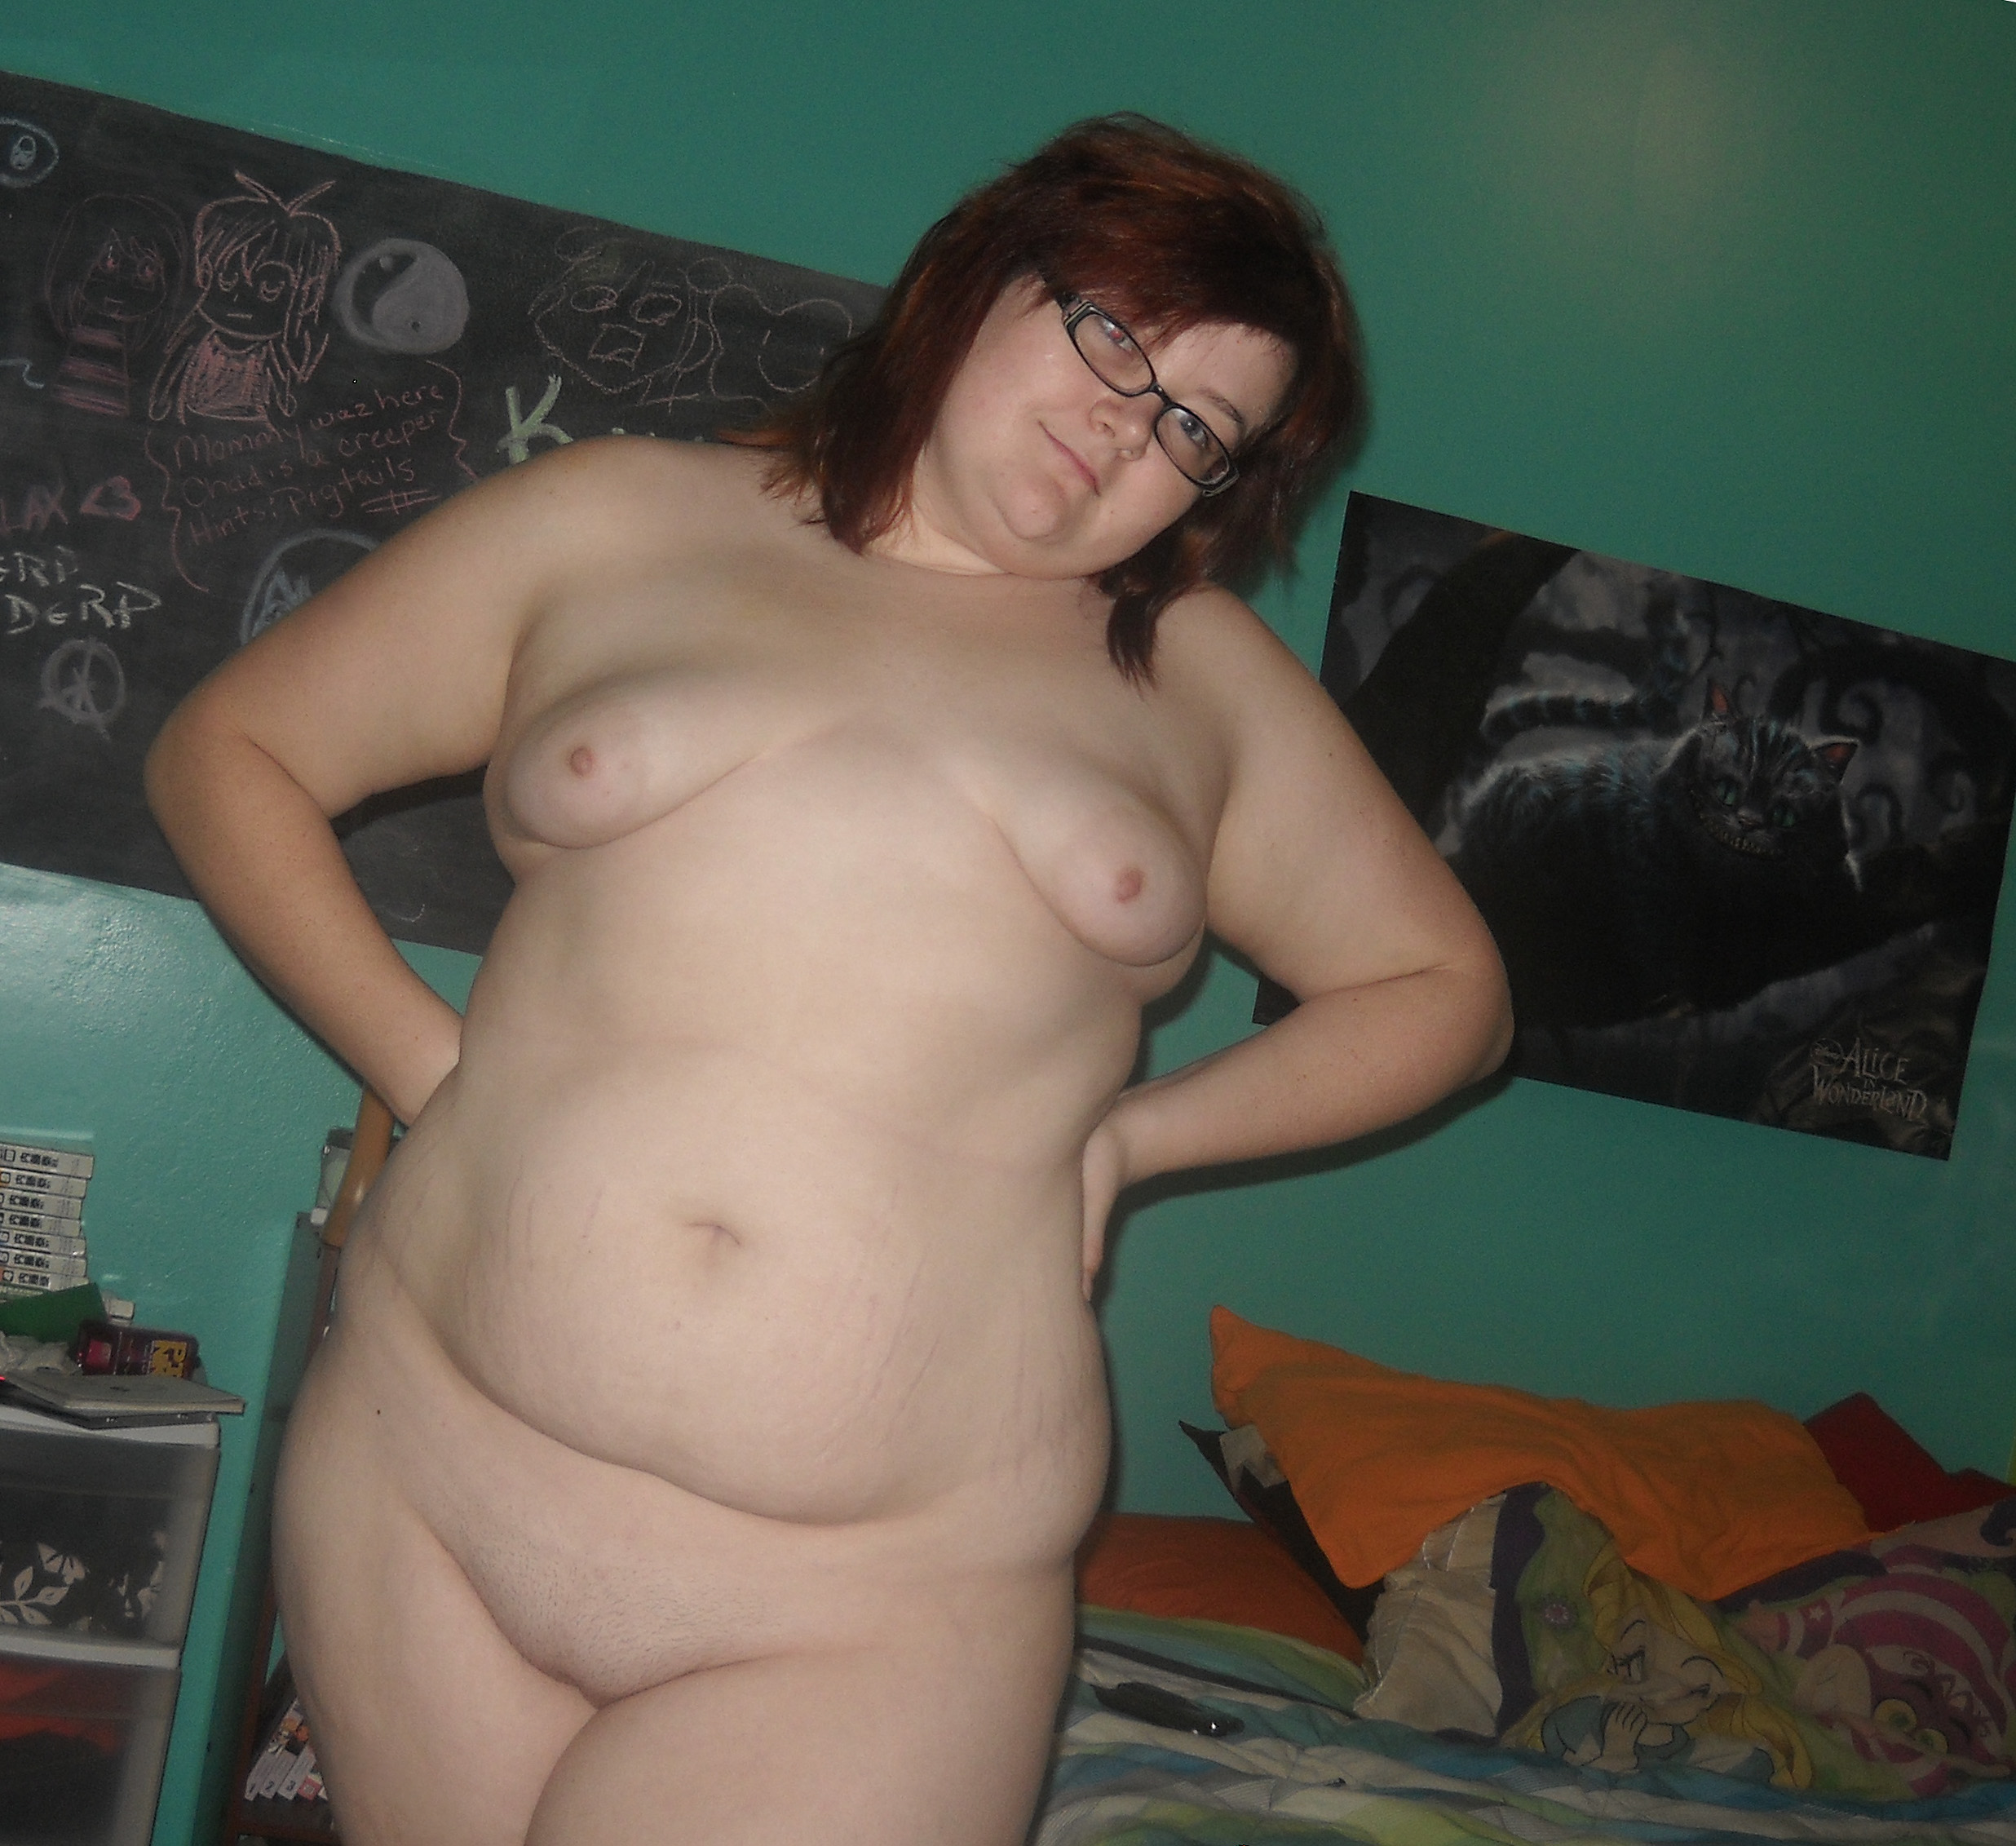 Chubby chicks gallery dum and